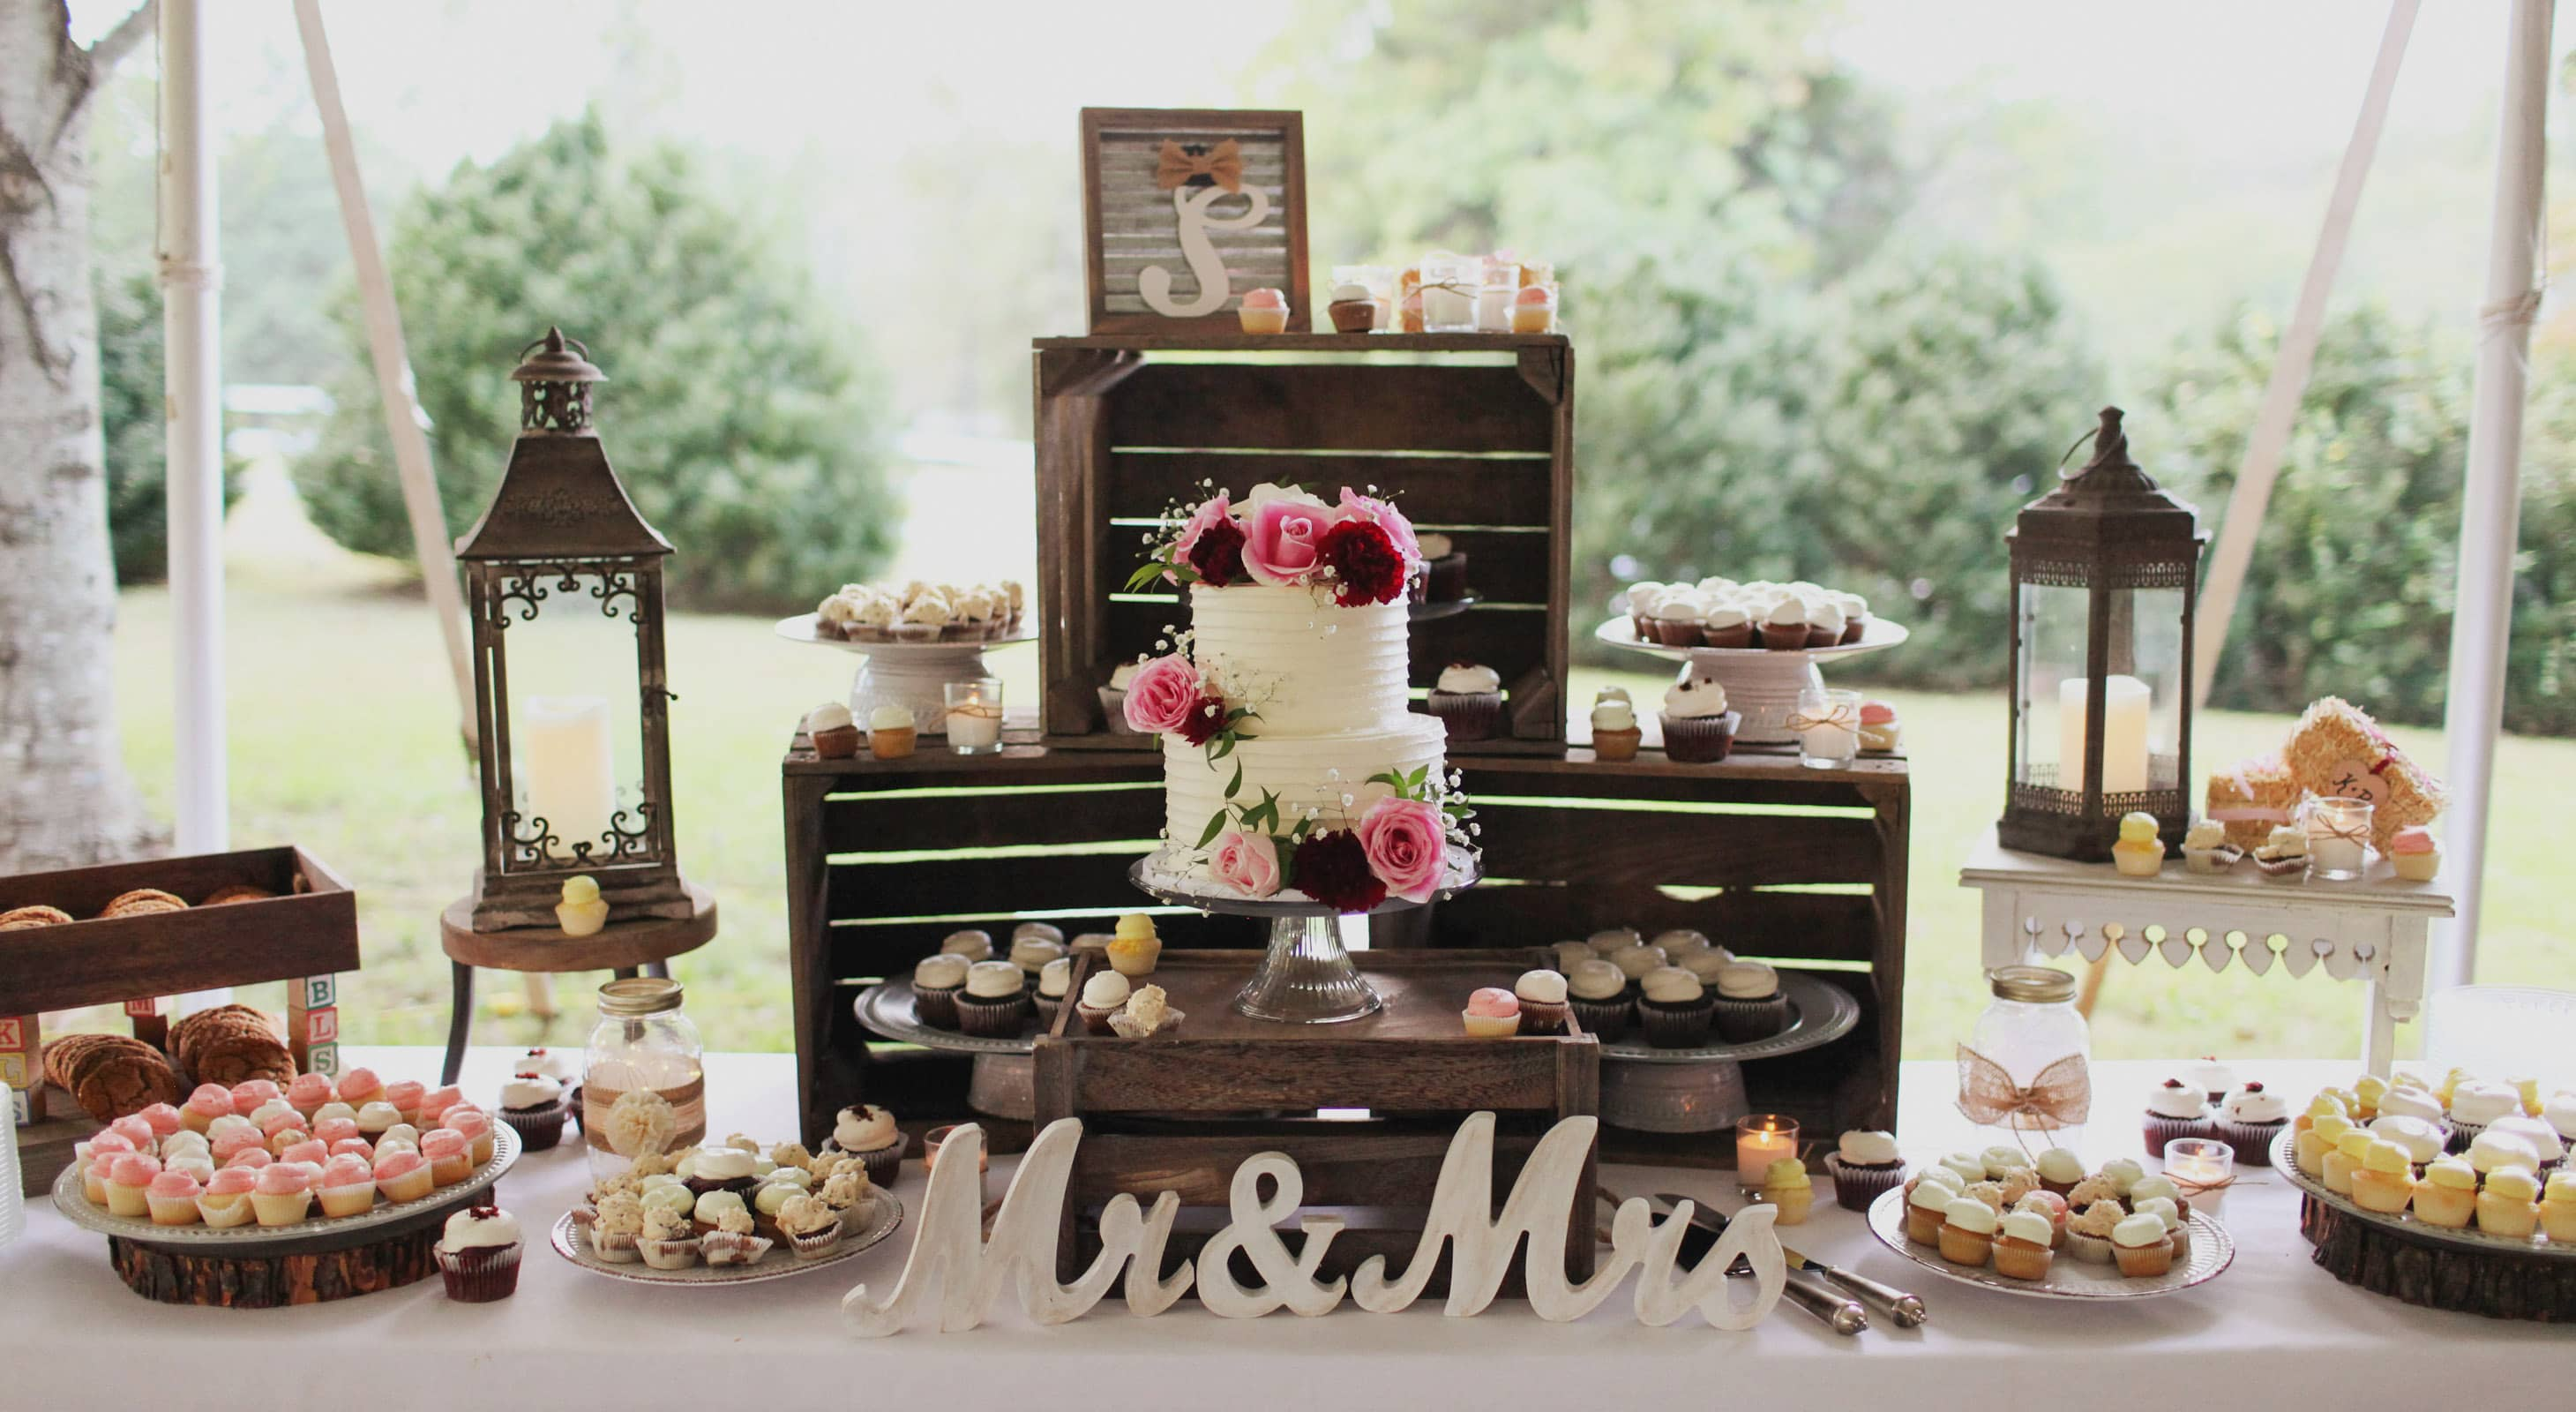 Dessert table at a wedding at Prospect Hill Inn & Restaurant